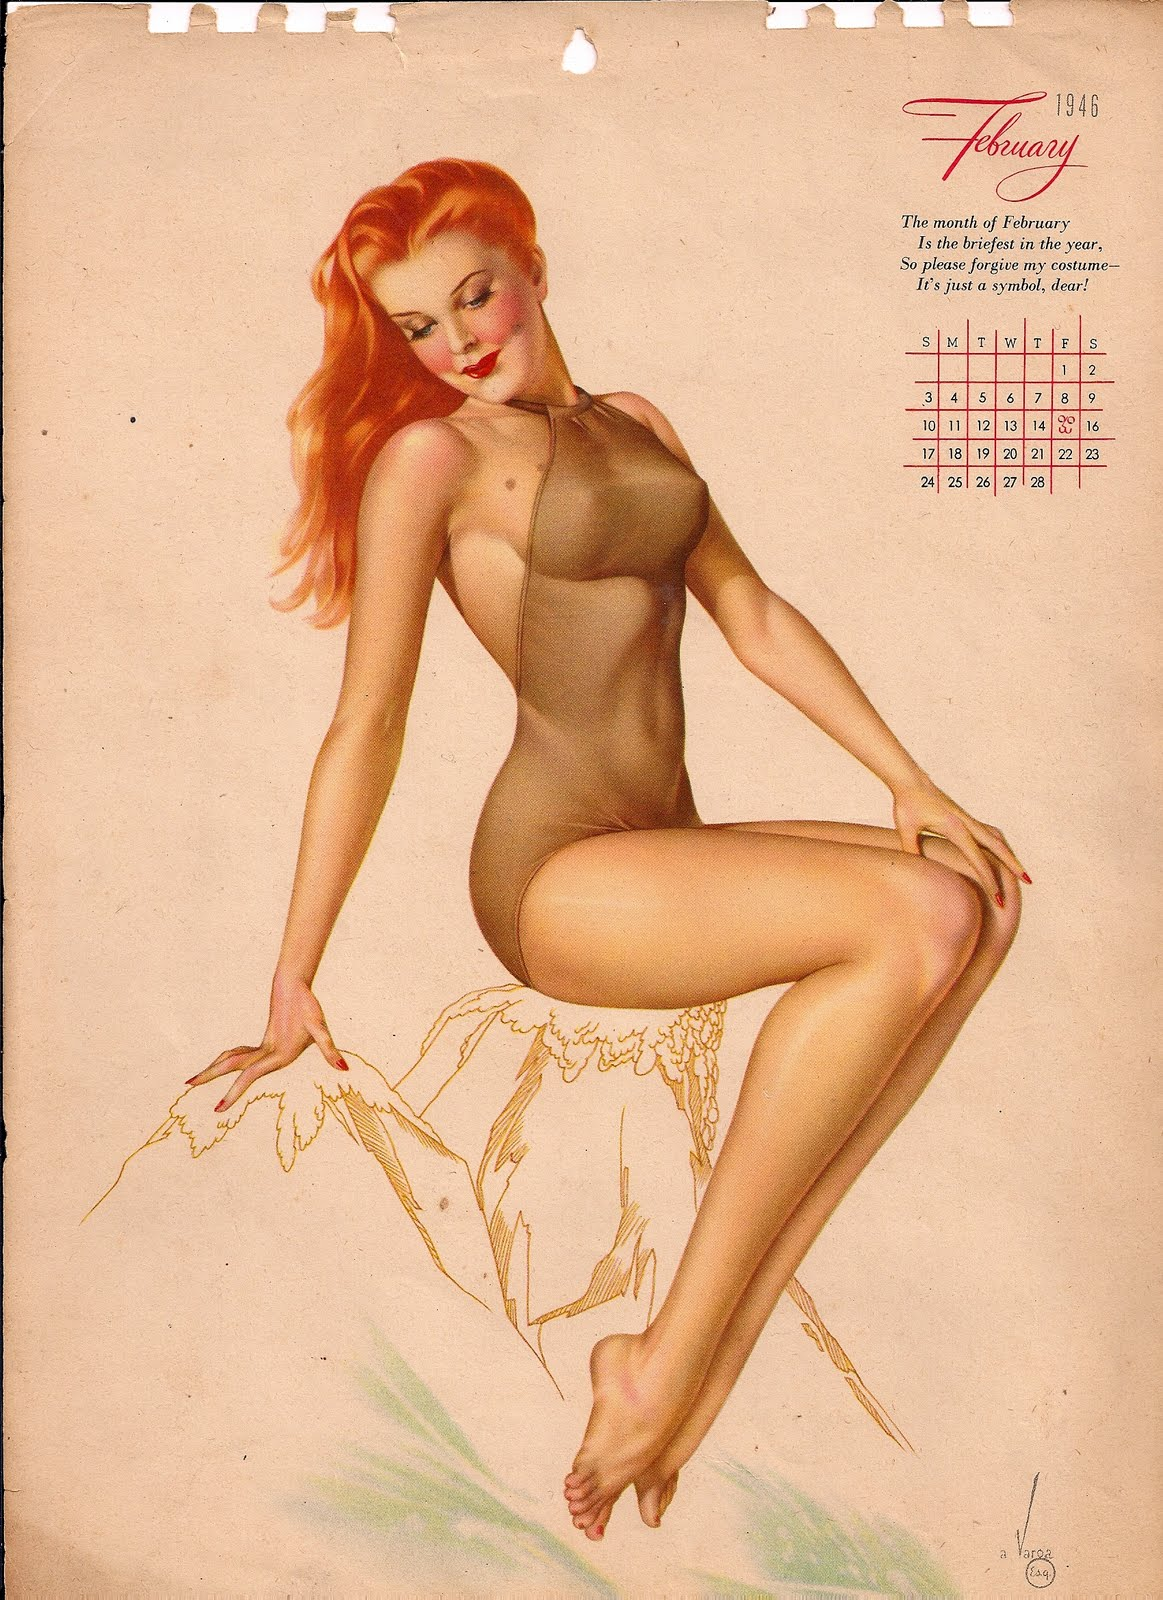 Pin Up Girls 50s 60s http://www.serbagunamarine.com/pin-up-indian-pipe.html